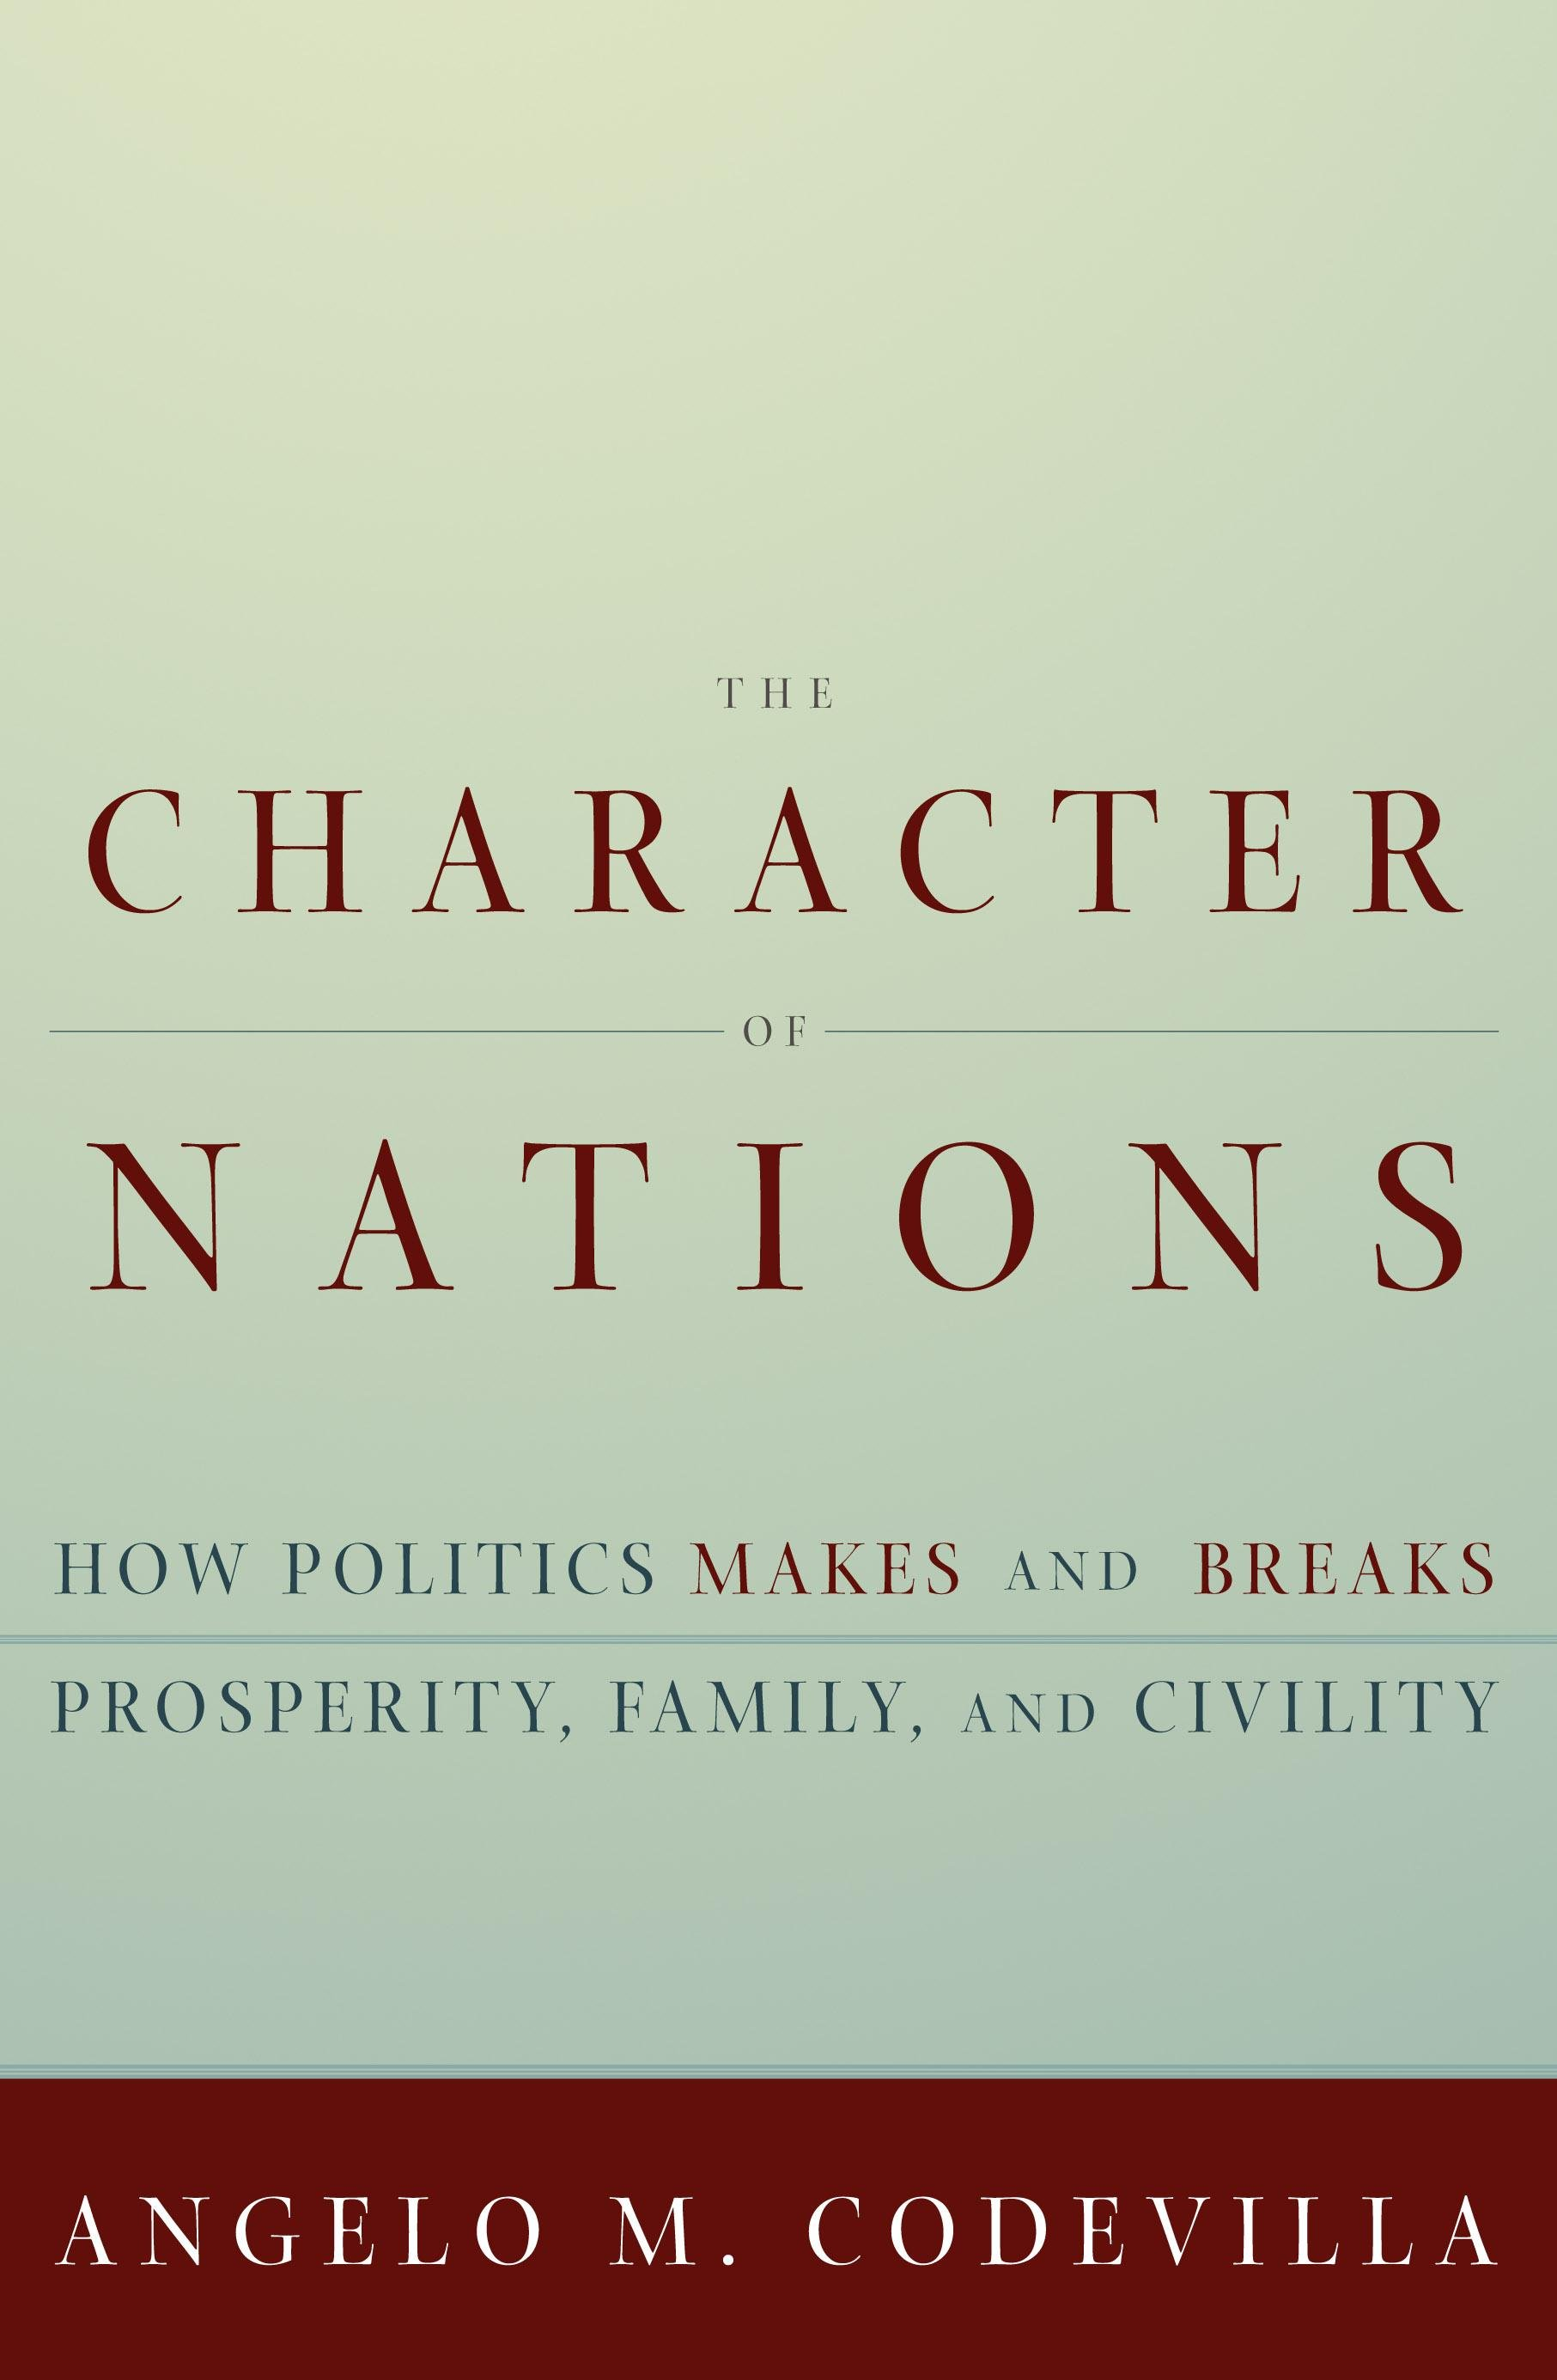 The Character of Nations How Politics Makes and Br: How Politics Makes and Breaks Prosperity, Family, and Civility EB9780786726998